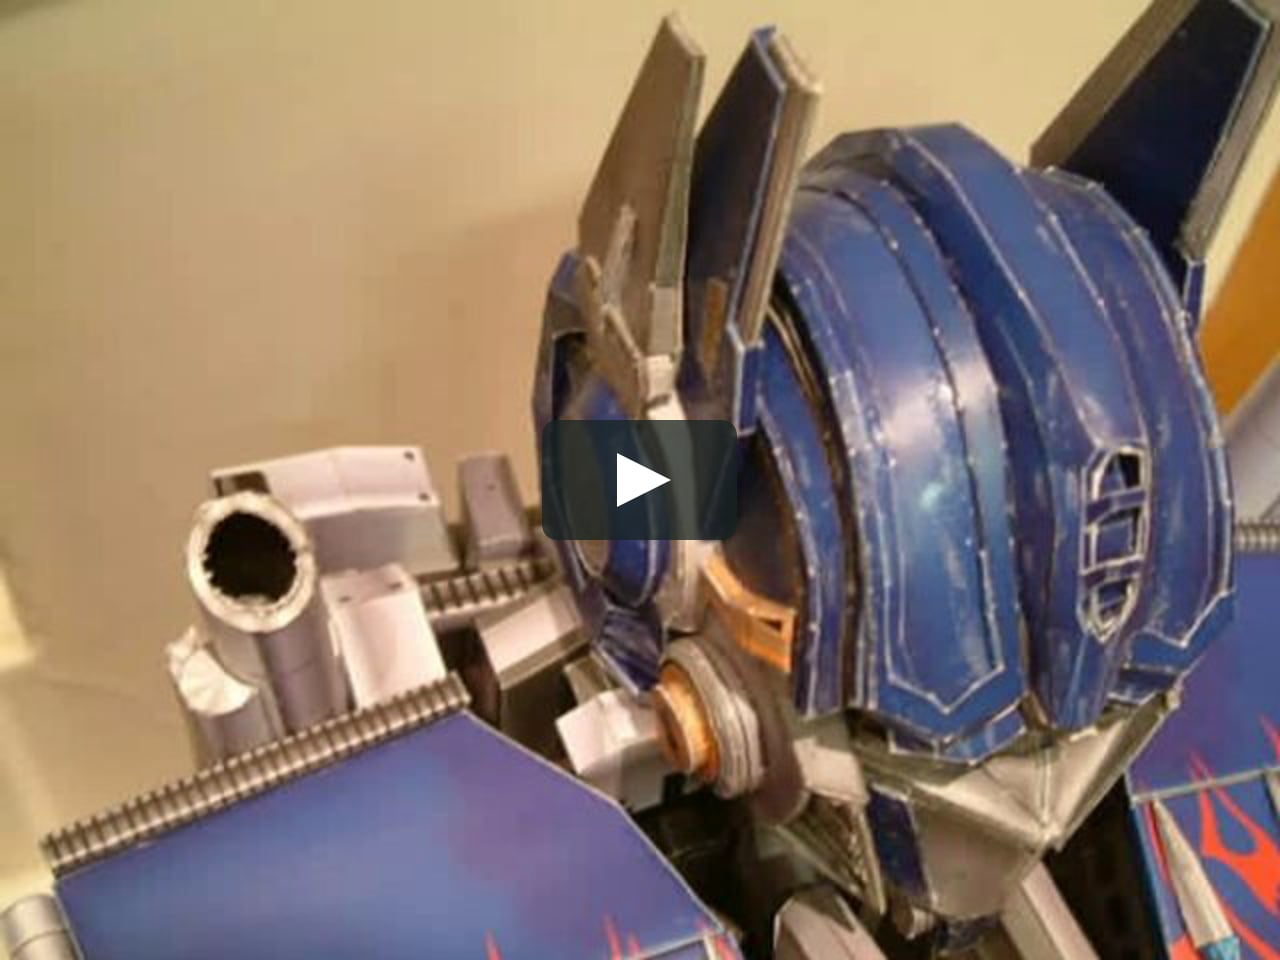 Papercraft 1M Optimus Prime Papercraft by fox186(Taiwan)